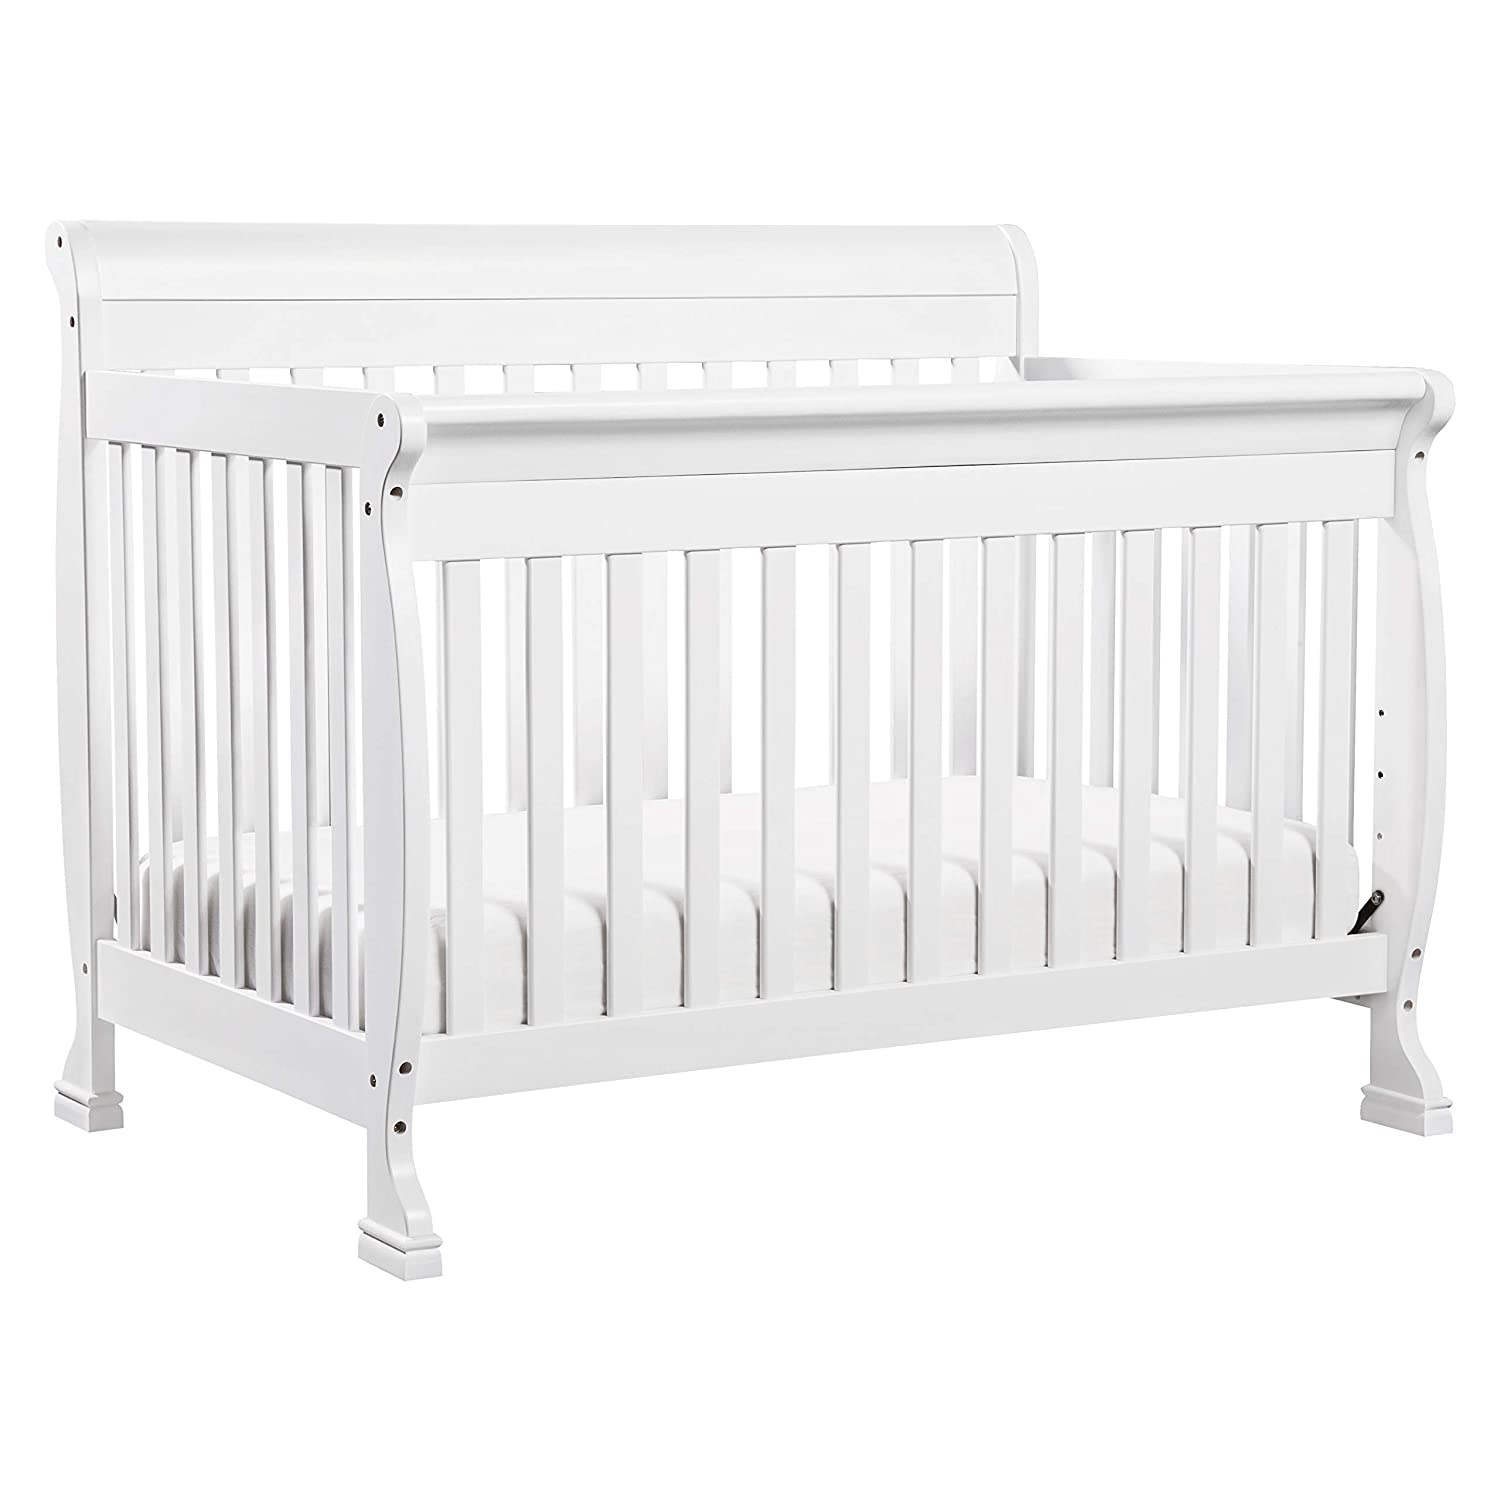 B000FT7NSI DaVinci Kalani 4-in-1 Convertible Crib in White | Greenguard Gold Certified 71bxjgZXZeL